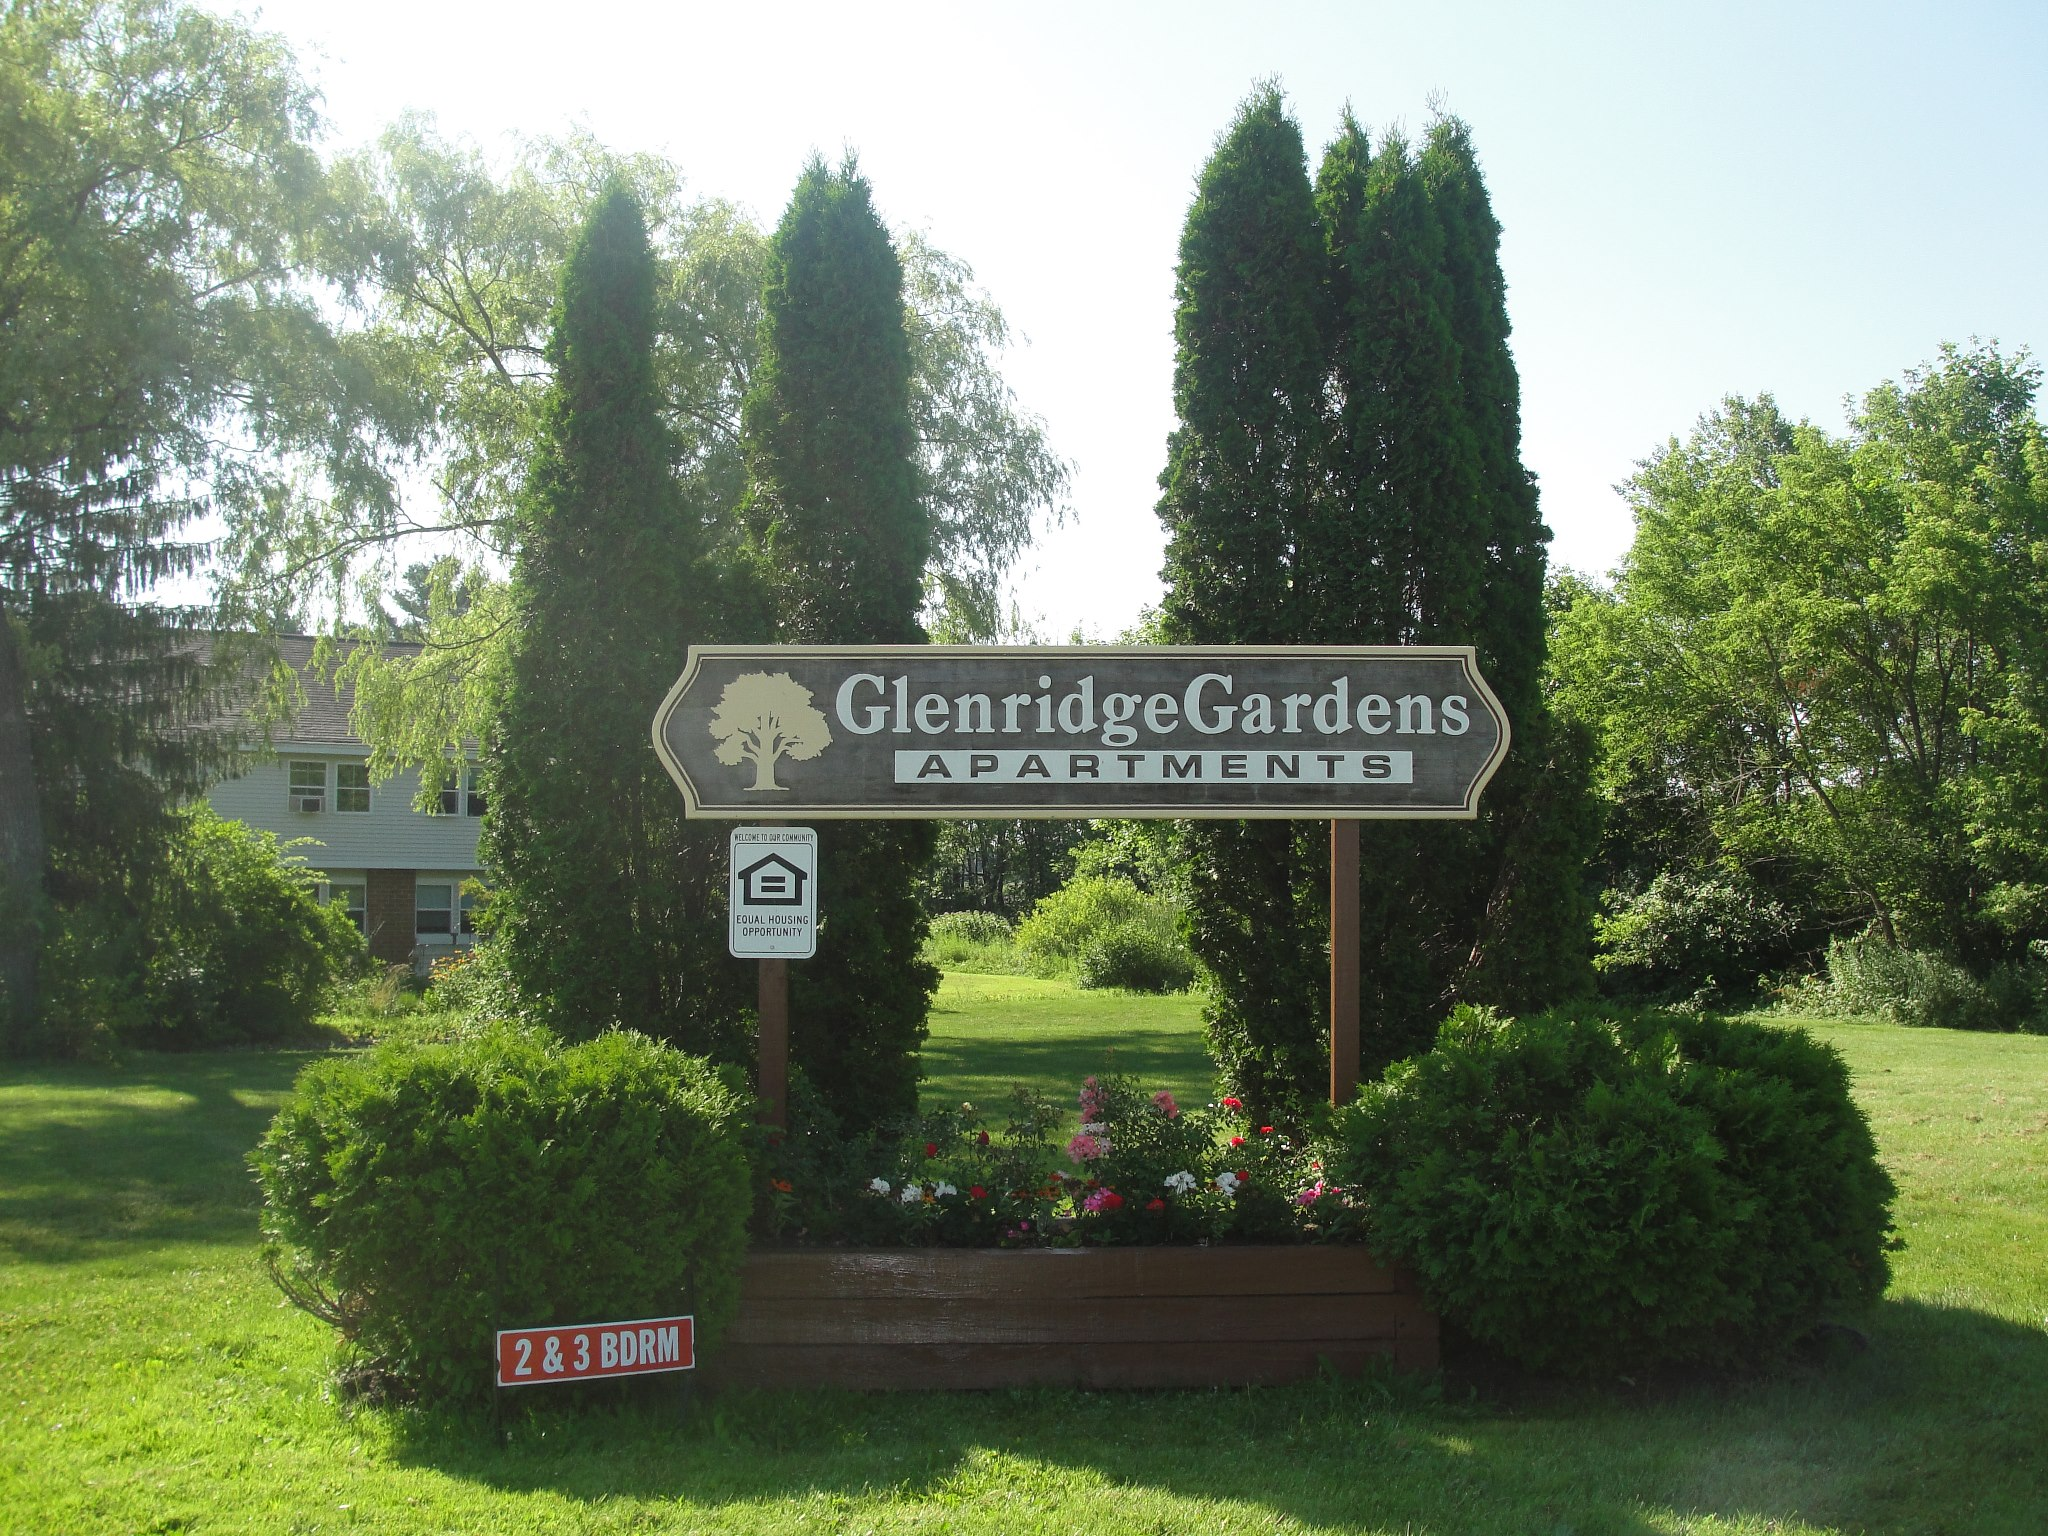 Glenridge Gardens Apartments